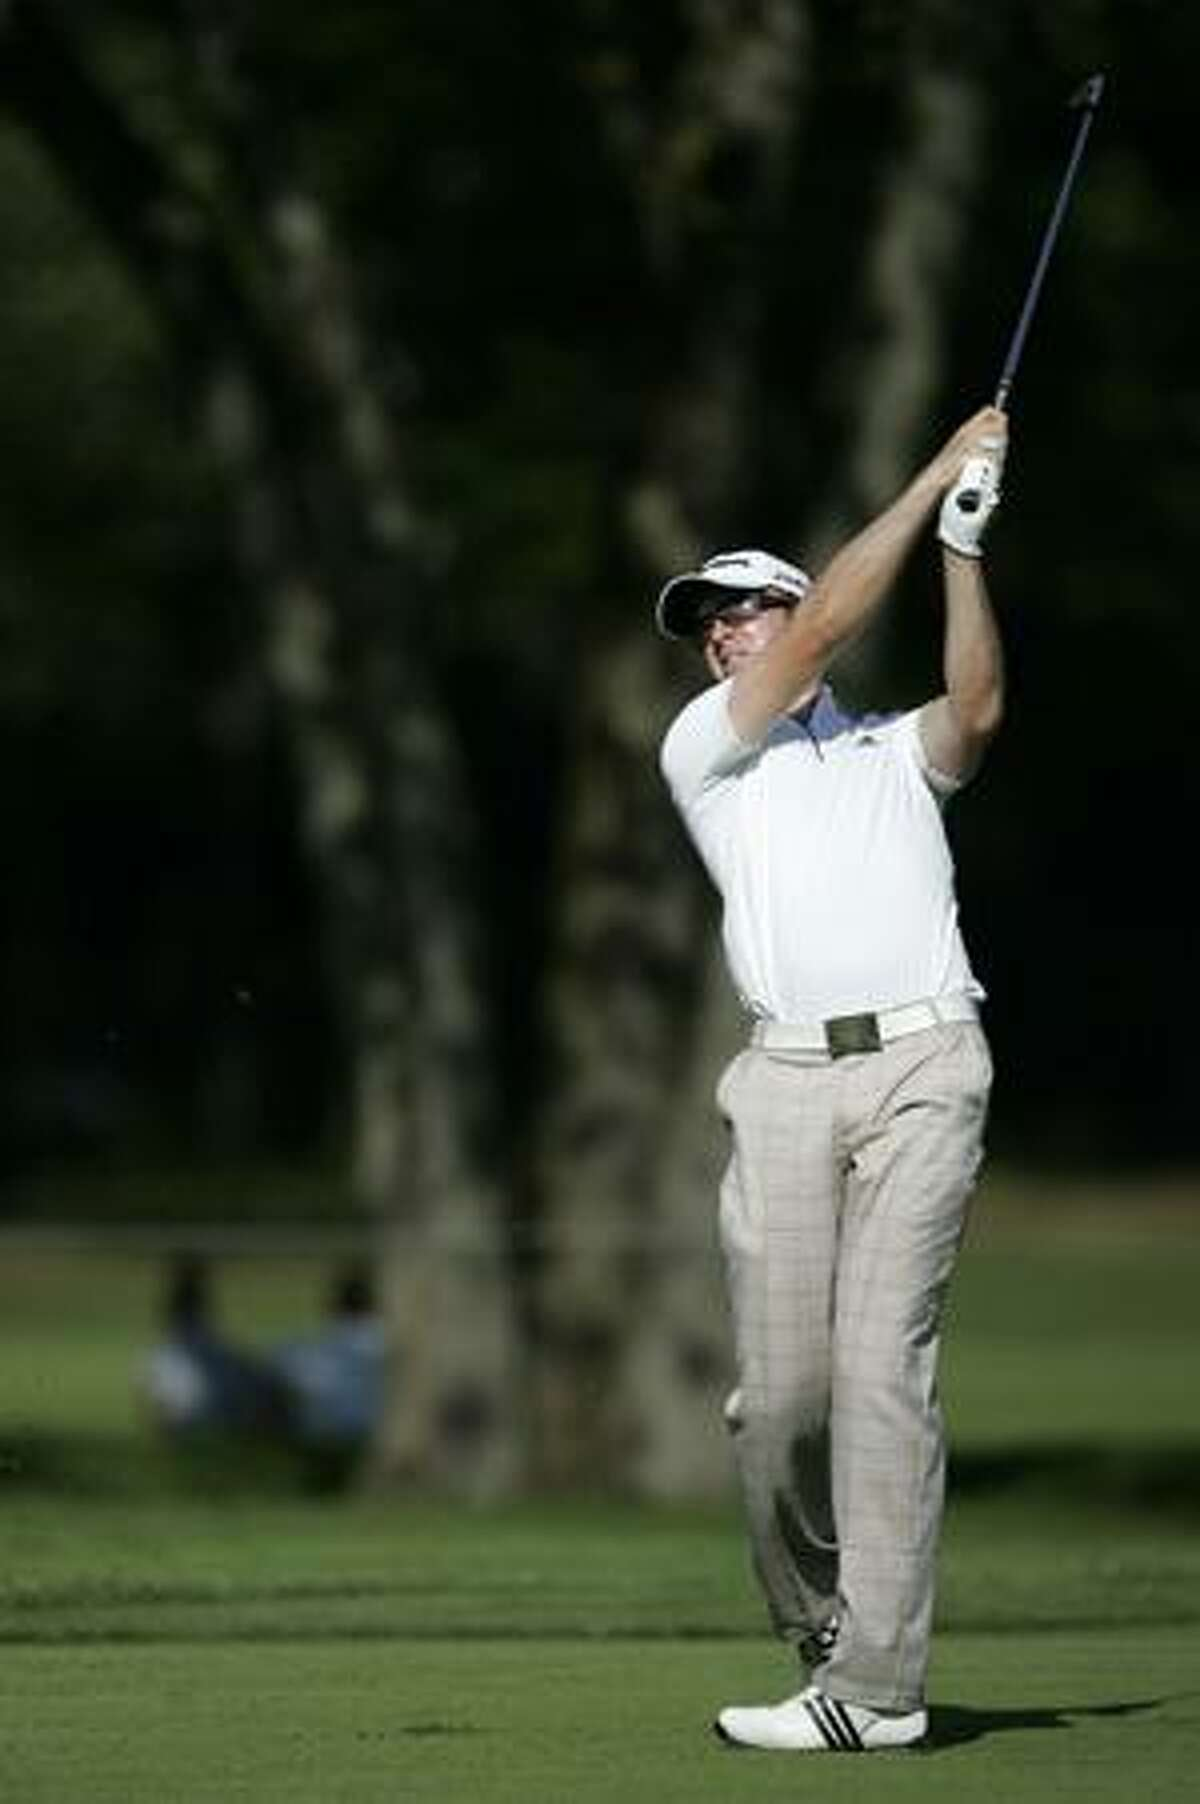 AP Martin Laird of Scotland, watches his shot from the 14th fairway to avoid a tree while playing the 13th hole during the third round of The Barclays golf tournament, Saturday, in Paramus, N.J.